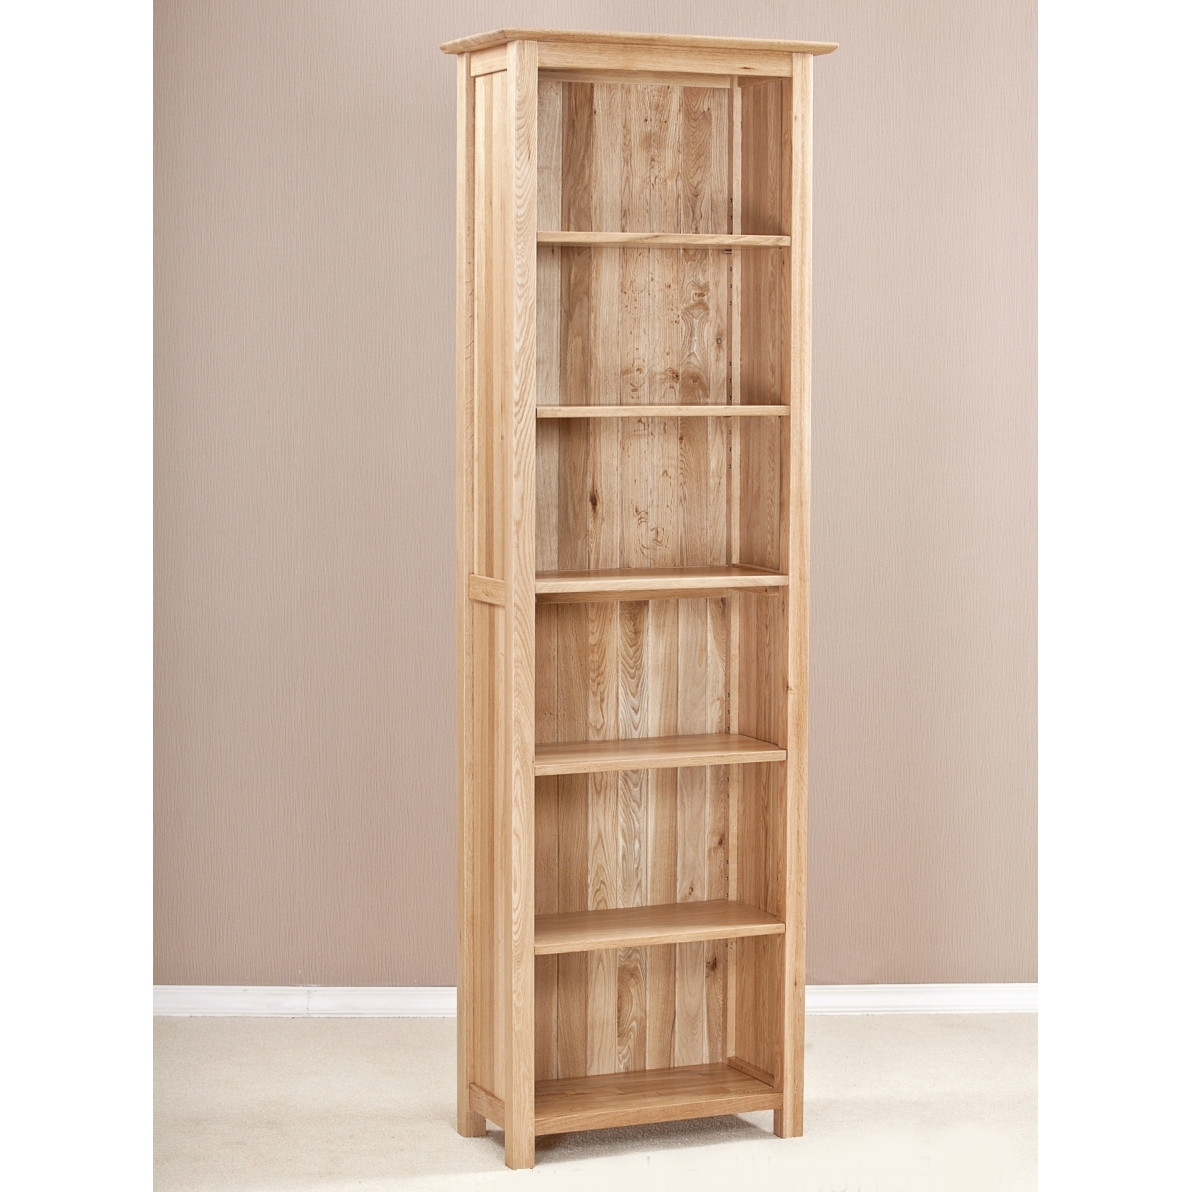 Most Popular Bookcases Ideas: Solid Wood Bookcases, Birch Bookcases, Unfinished Throughout Solid Oak Bookcases (View 9 of 15)